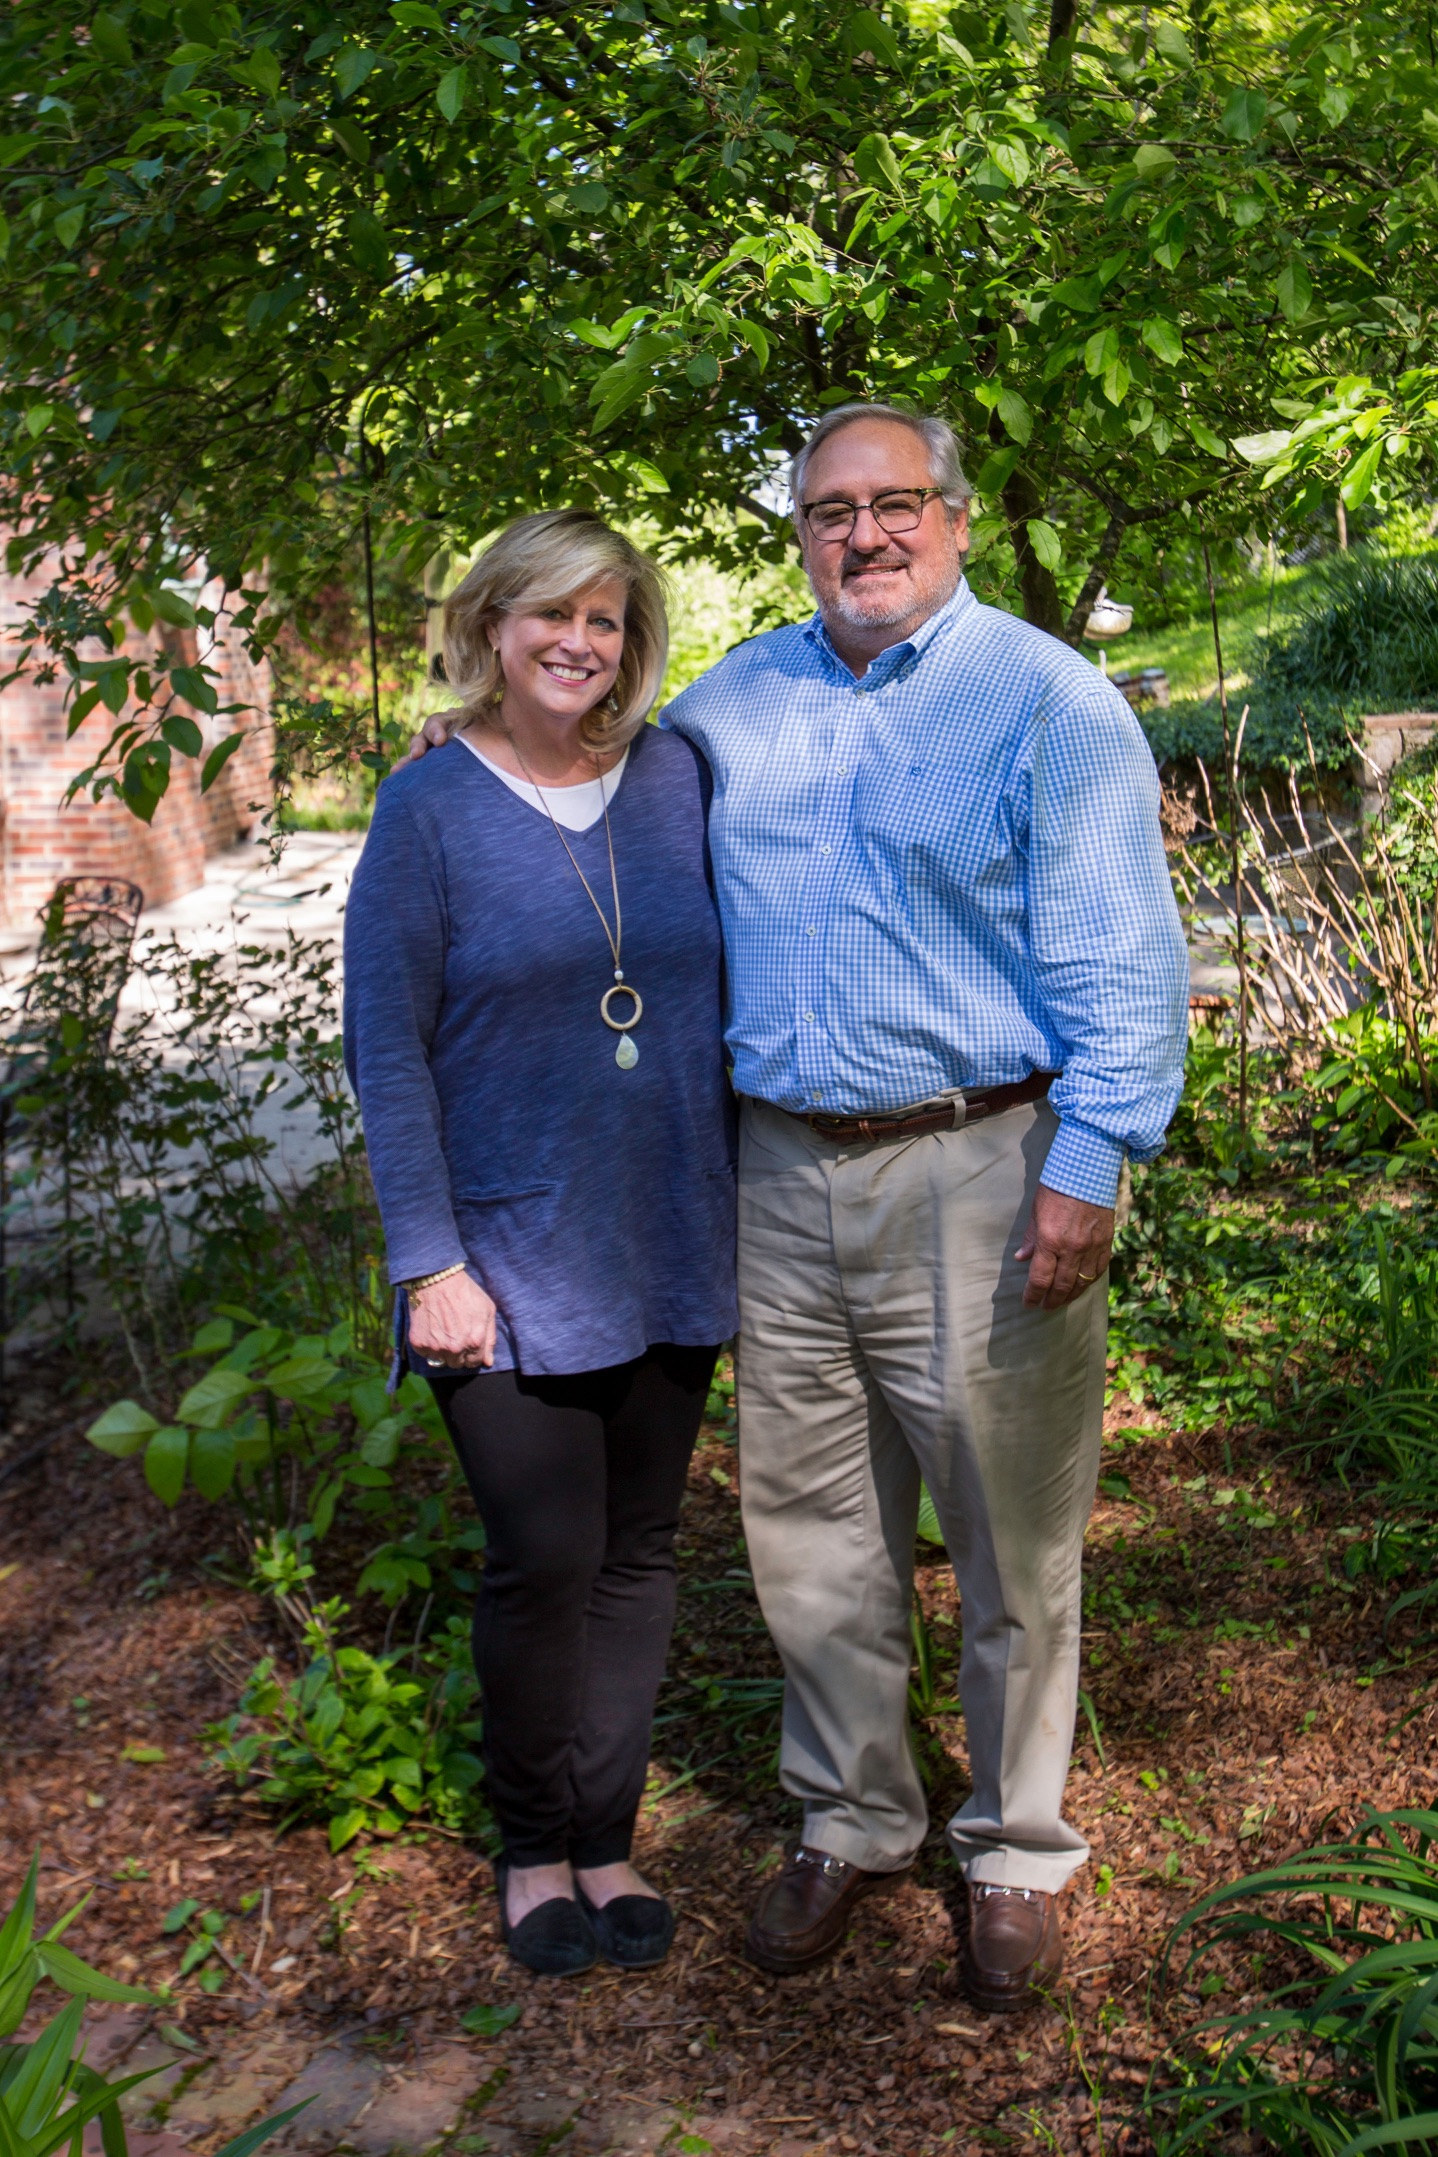 Neal Clayton, Managing Broker, and Marguerite Clayton, Property Manager